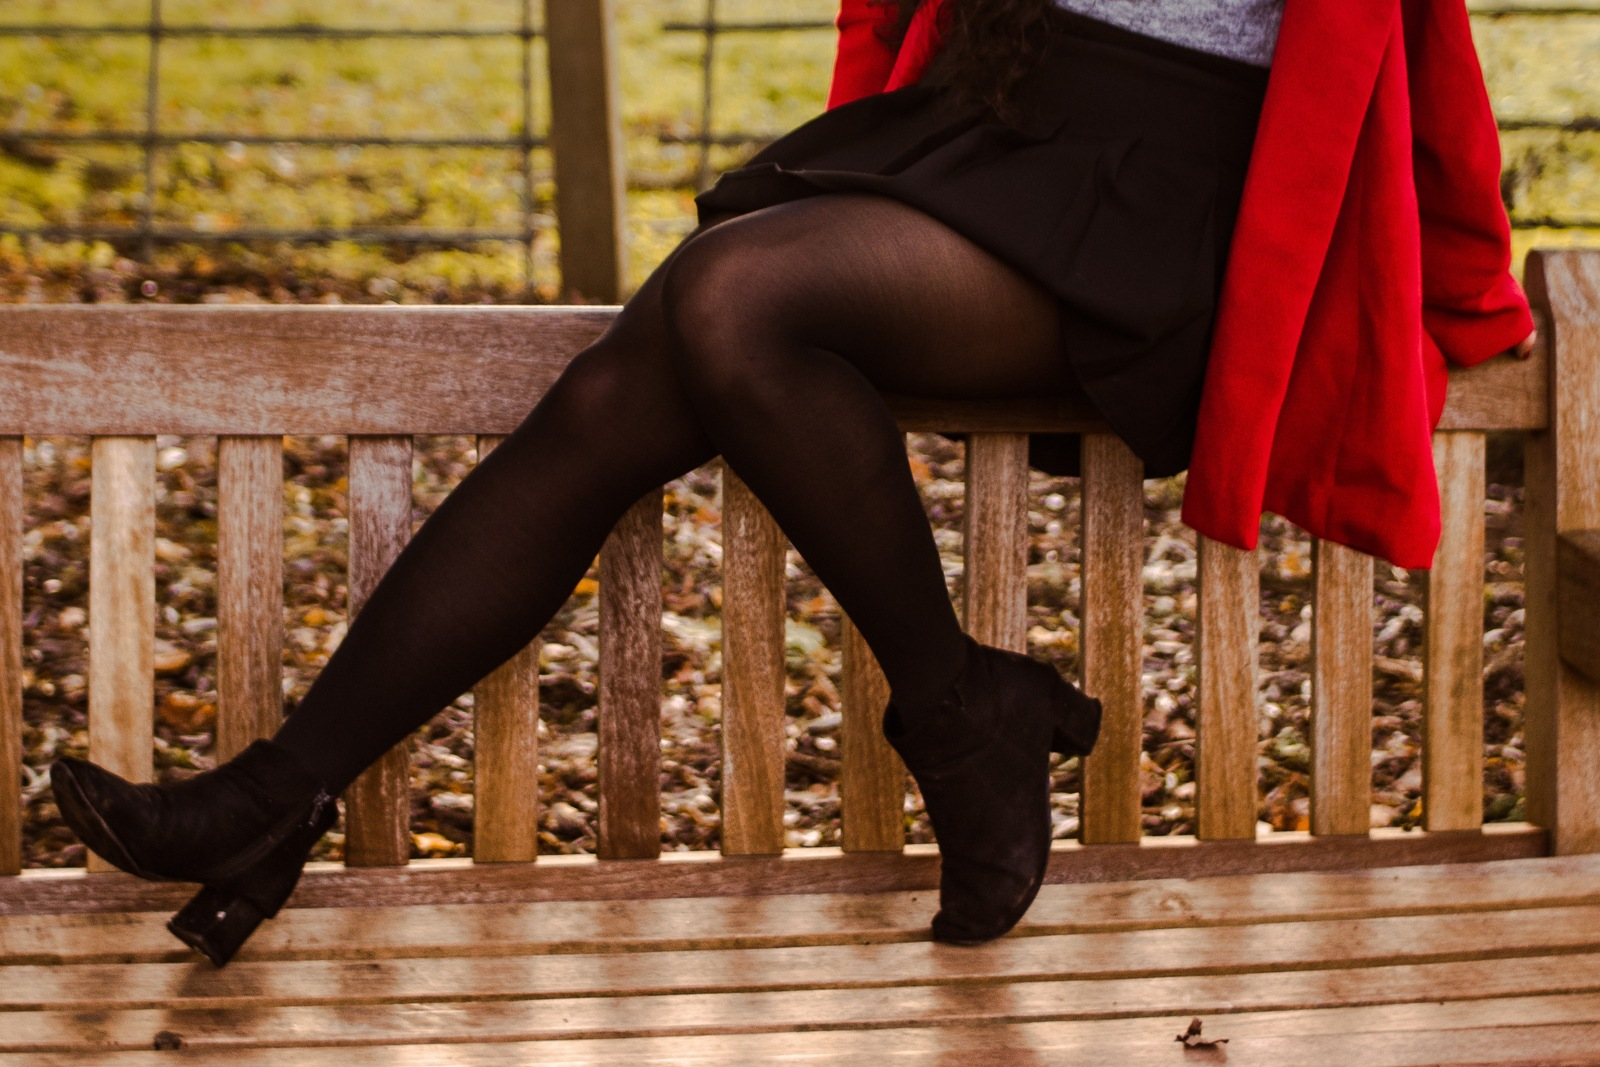 Person sitting on a bench in tights